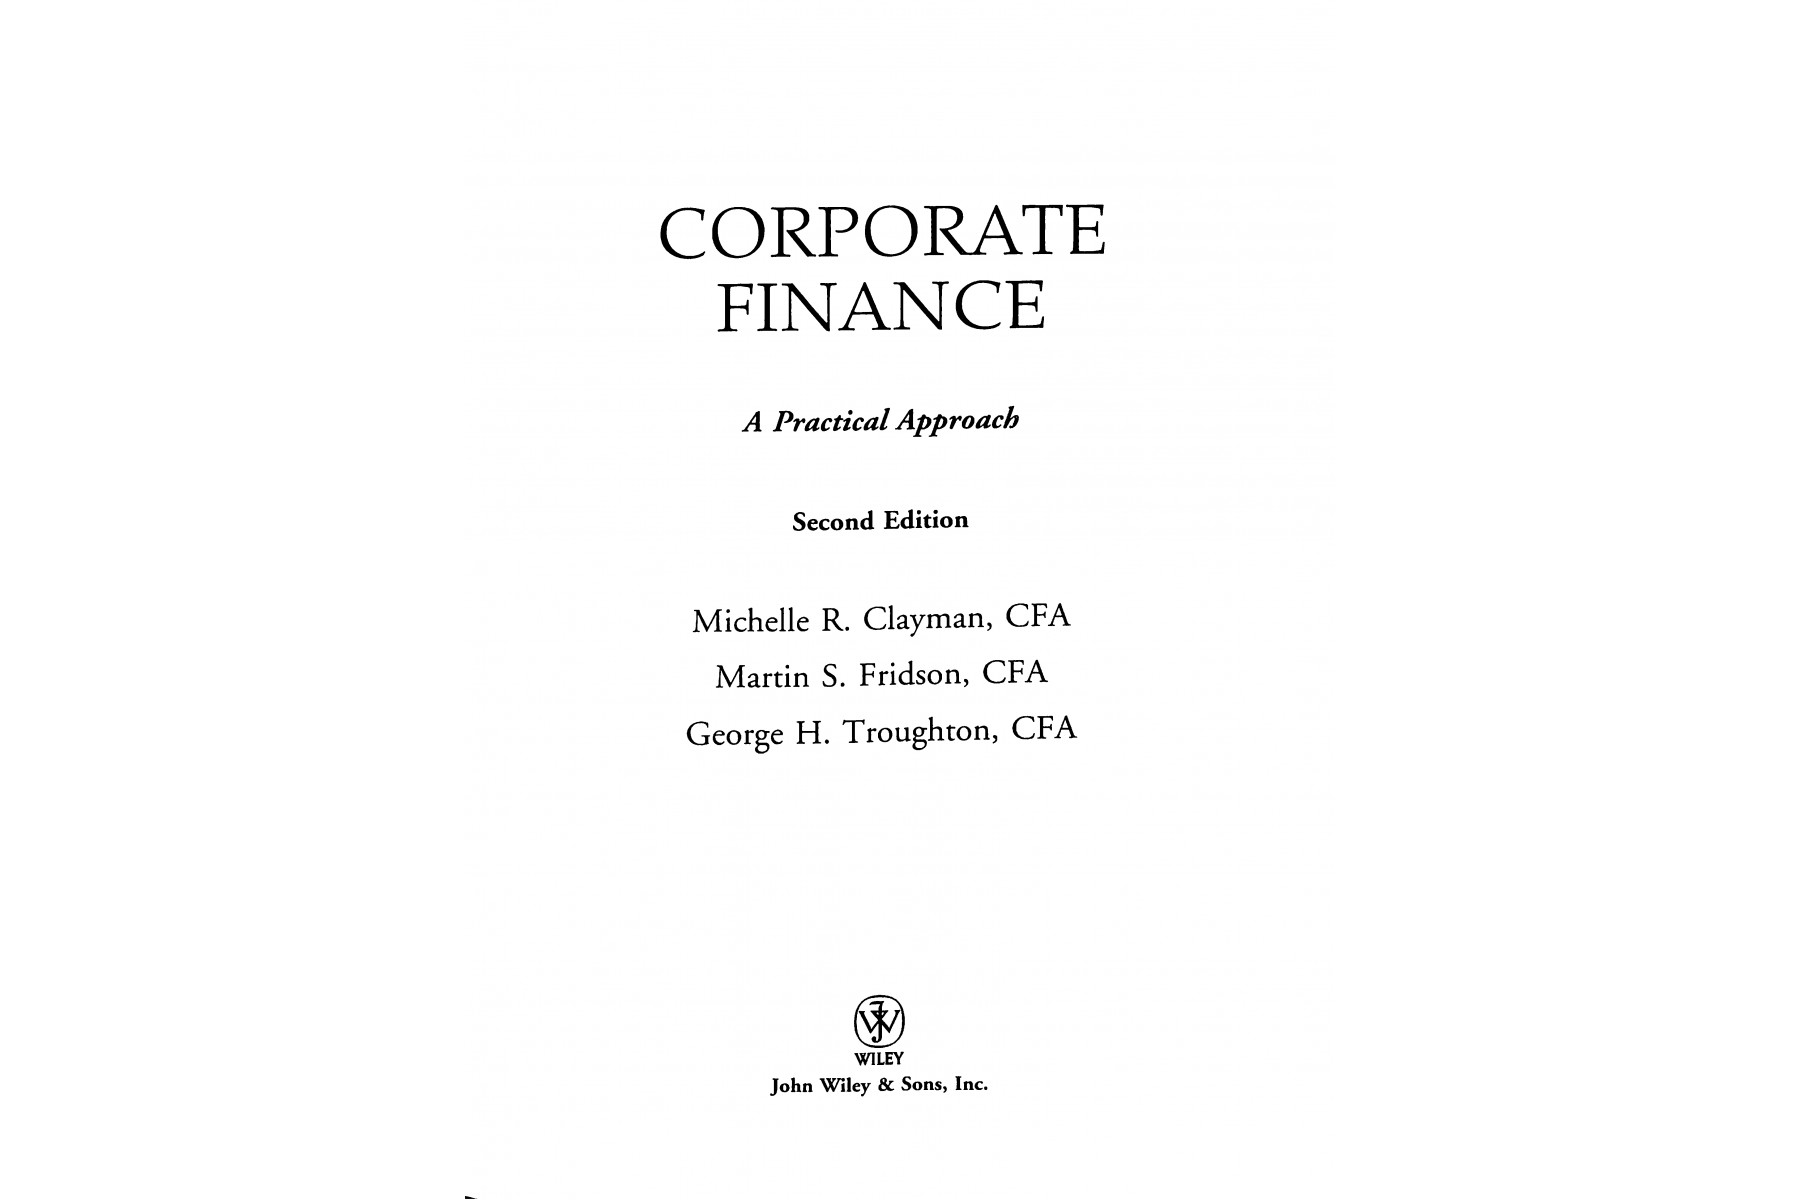 Corporate Finance: A Practical Approach (CFA Institute Investment Series)